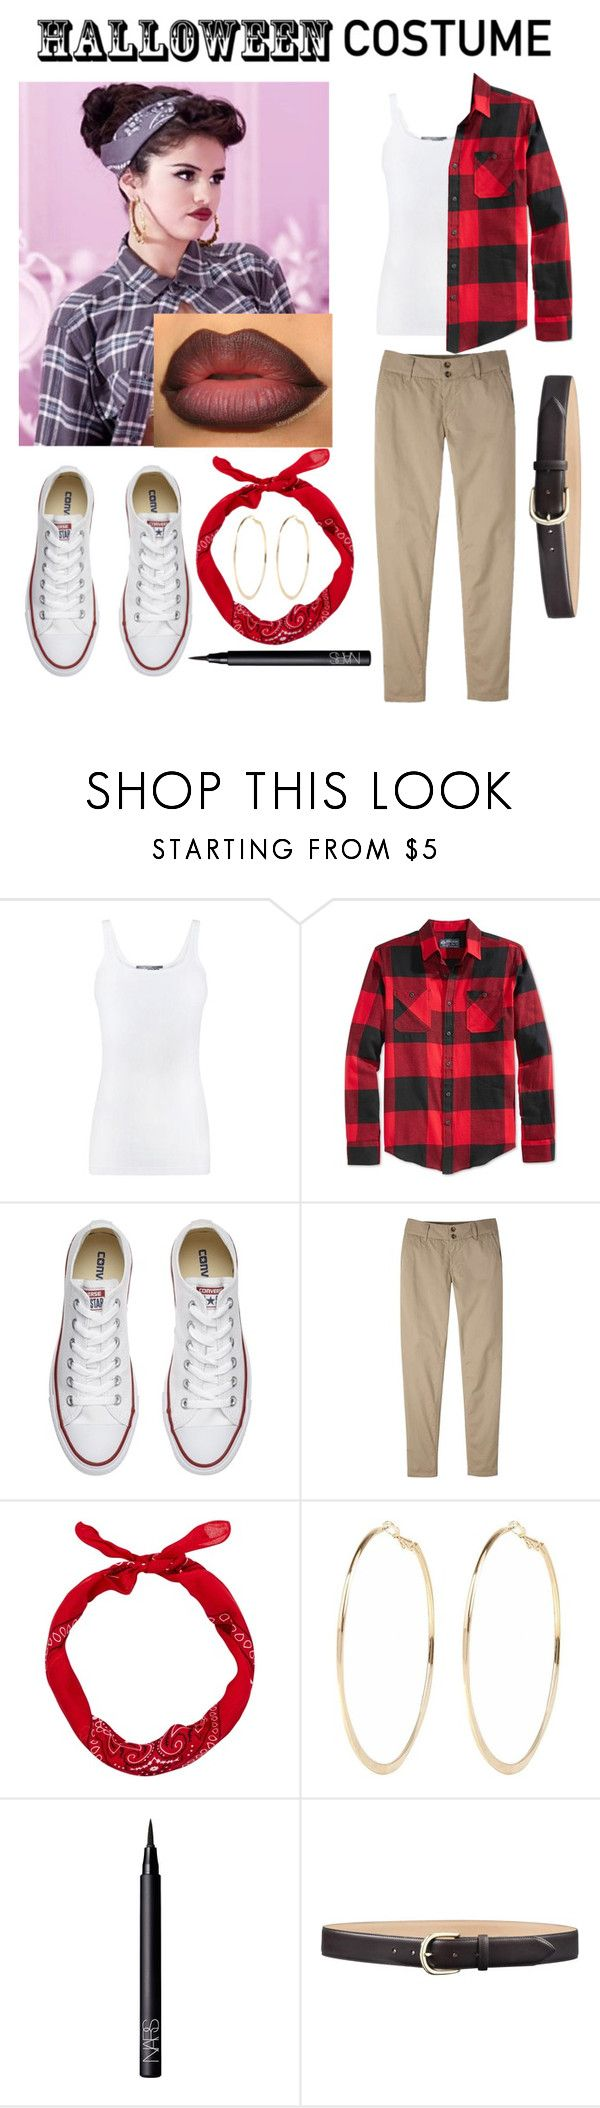 """Last minute chola costume!"" by jbeach1124 ❤ liked on Polyvore featuring Vince, American Rag Cie, Converse, Mountain Khakis, River Island and NARS Cosmetics"